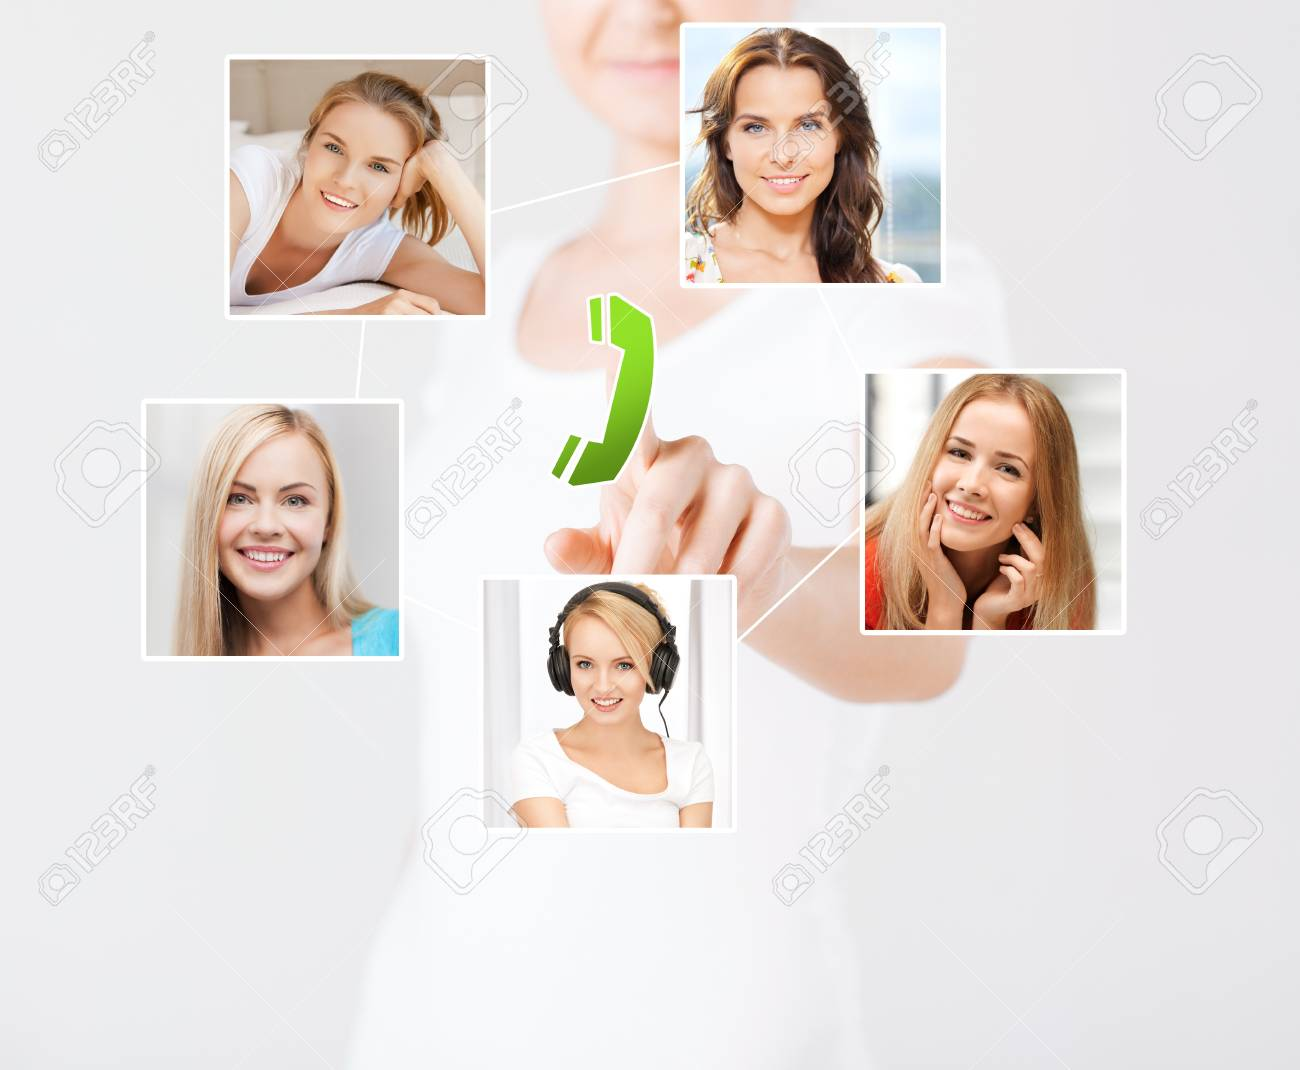 technology and communication - woman pressing button on virtual screen with contact icons Stock Photo - 20772562